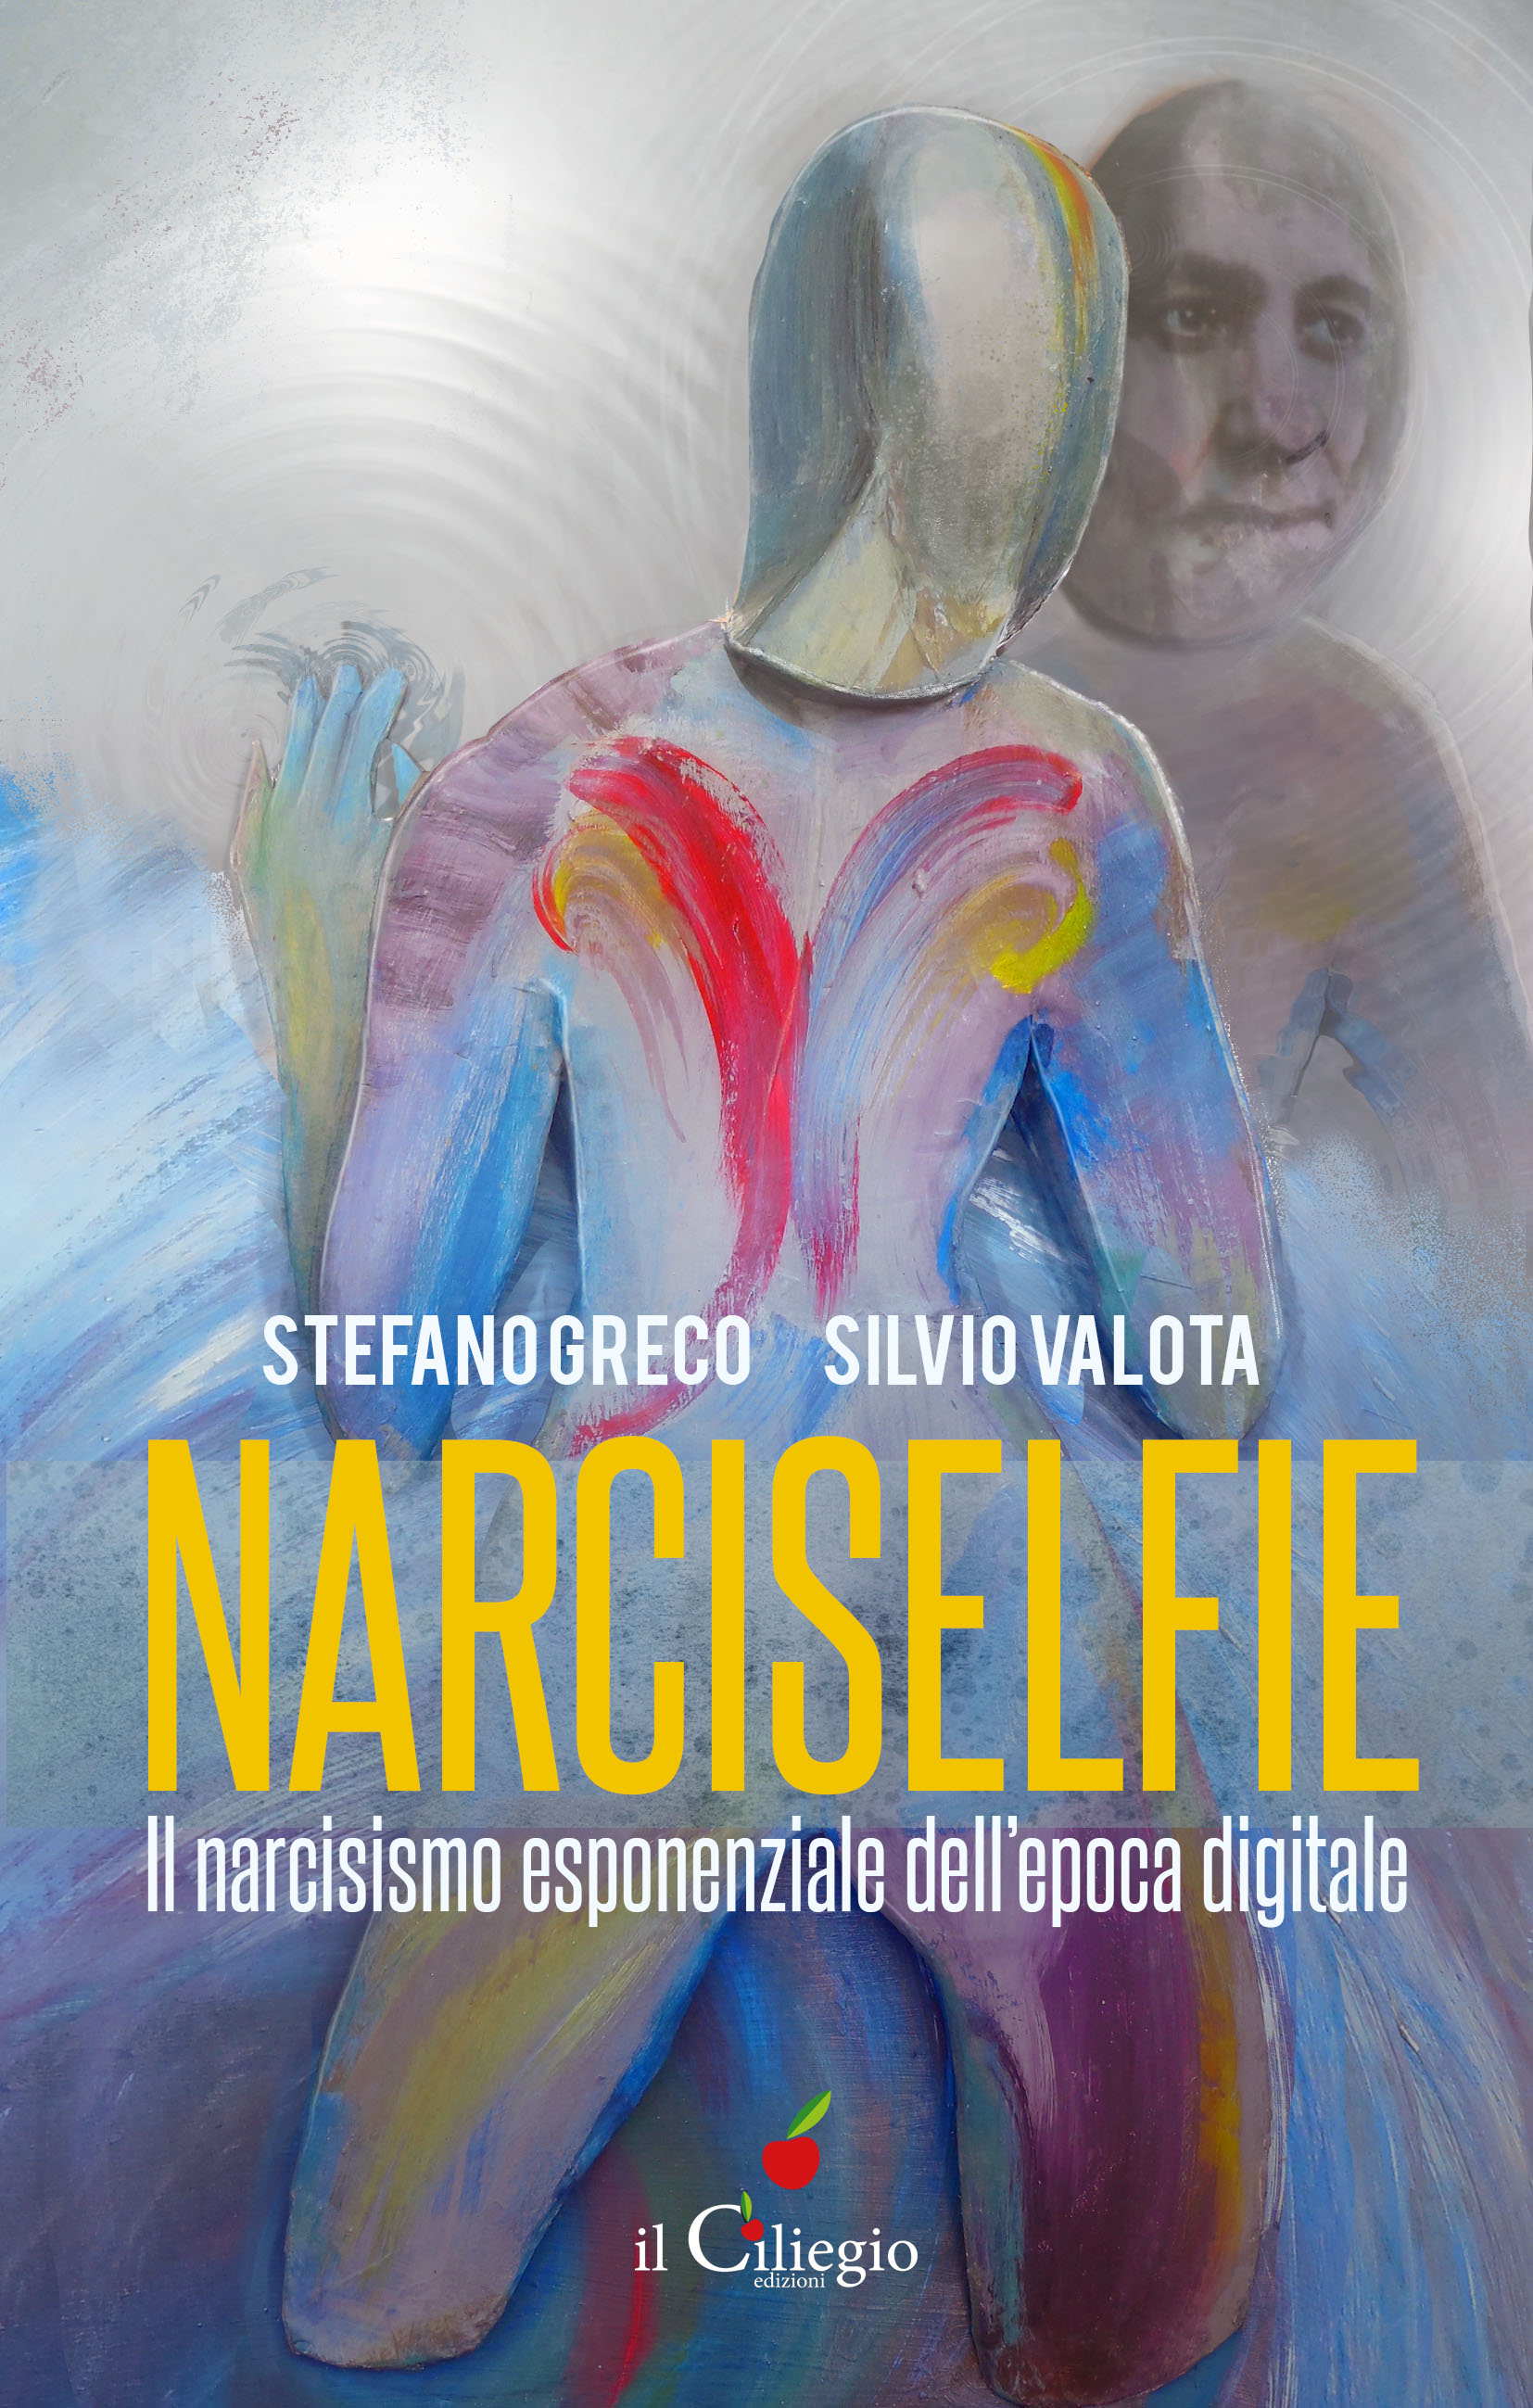 narciselfie estate romana